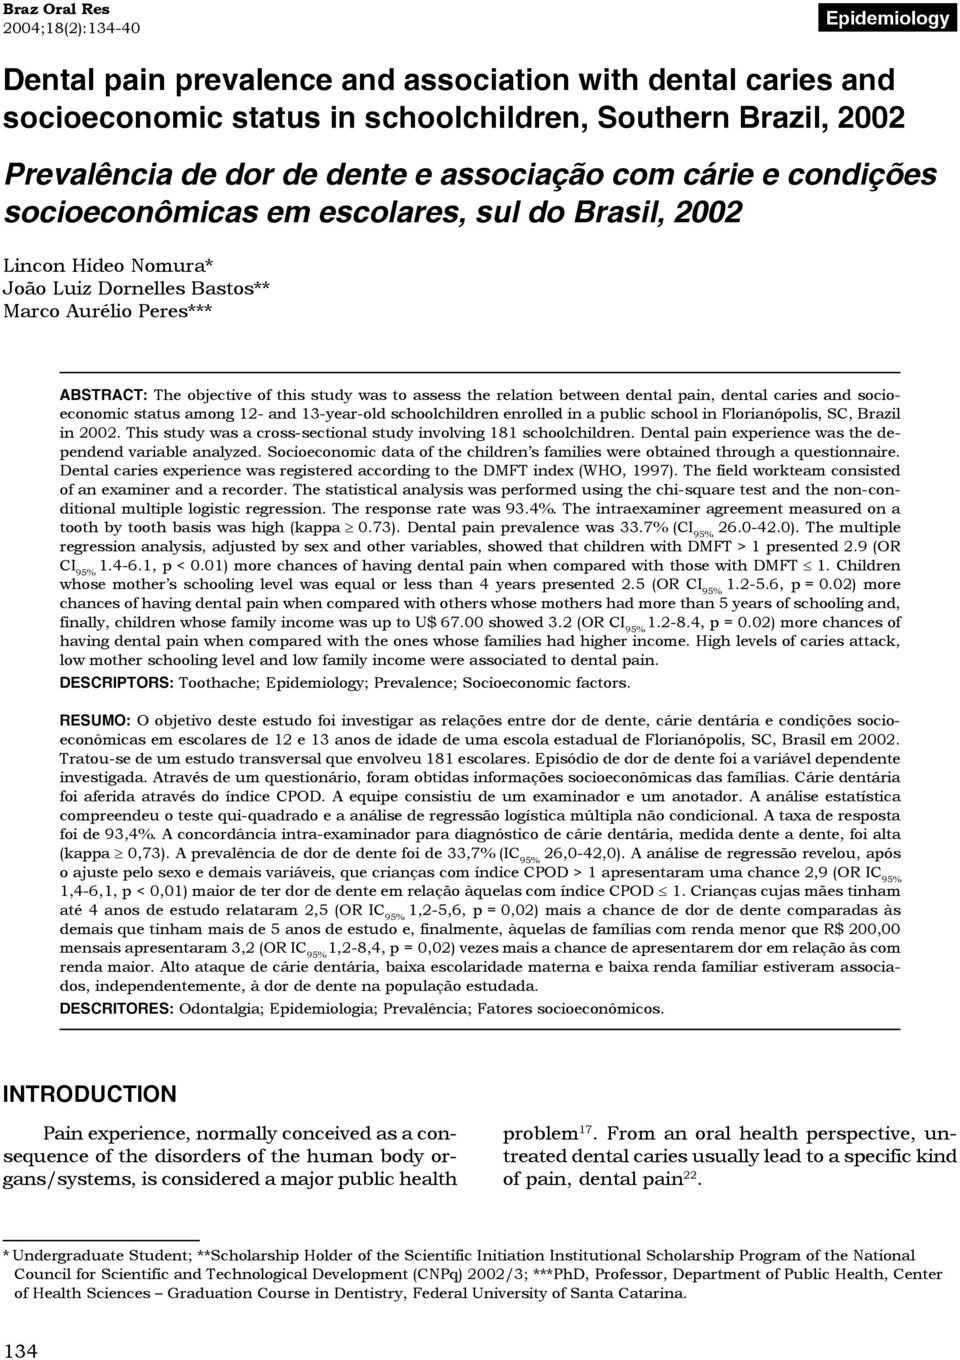 to assess the relation between dental pain, dental caries and socioeconomic status among 12- and 13-year-old schoolchildren enrolled in a public school in Florianópolis, SC, Brazil in 2002.